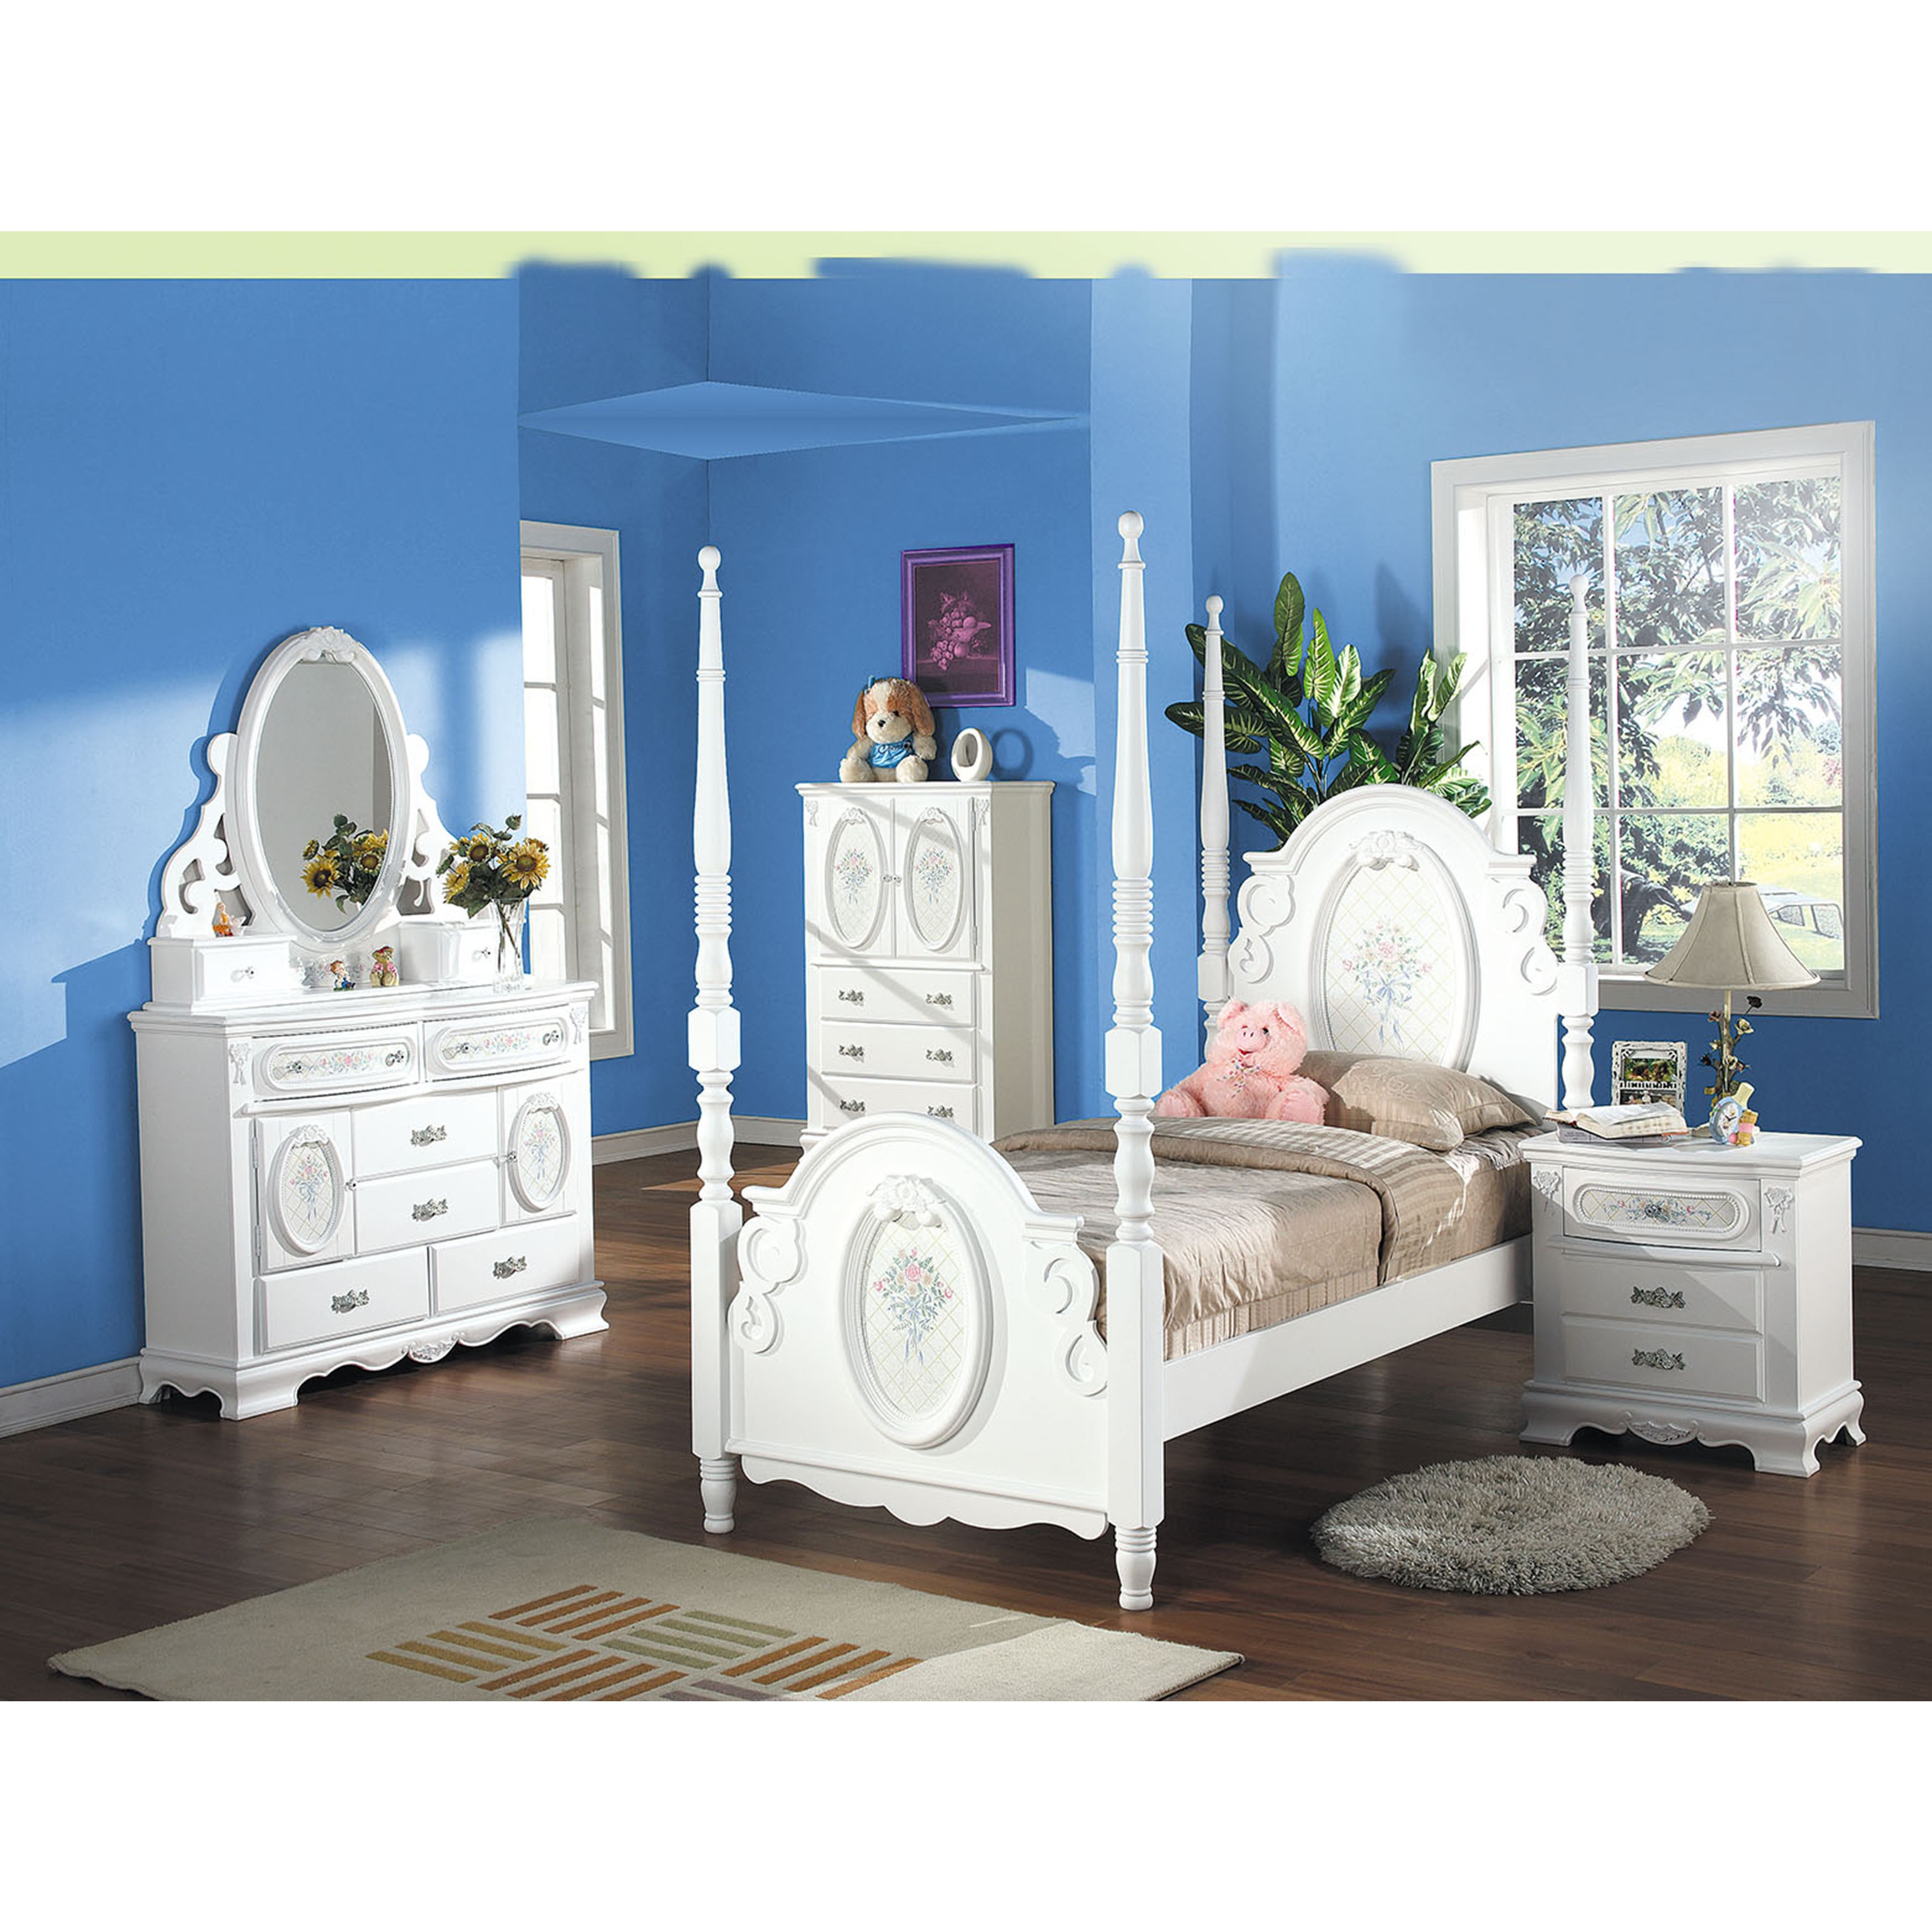 Acme Furniture Flora White Wood TV Armoire With Hanging Rod   Free Shipping  Today   Overstock.com   20465081